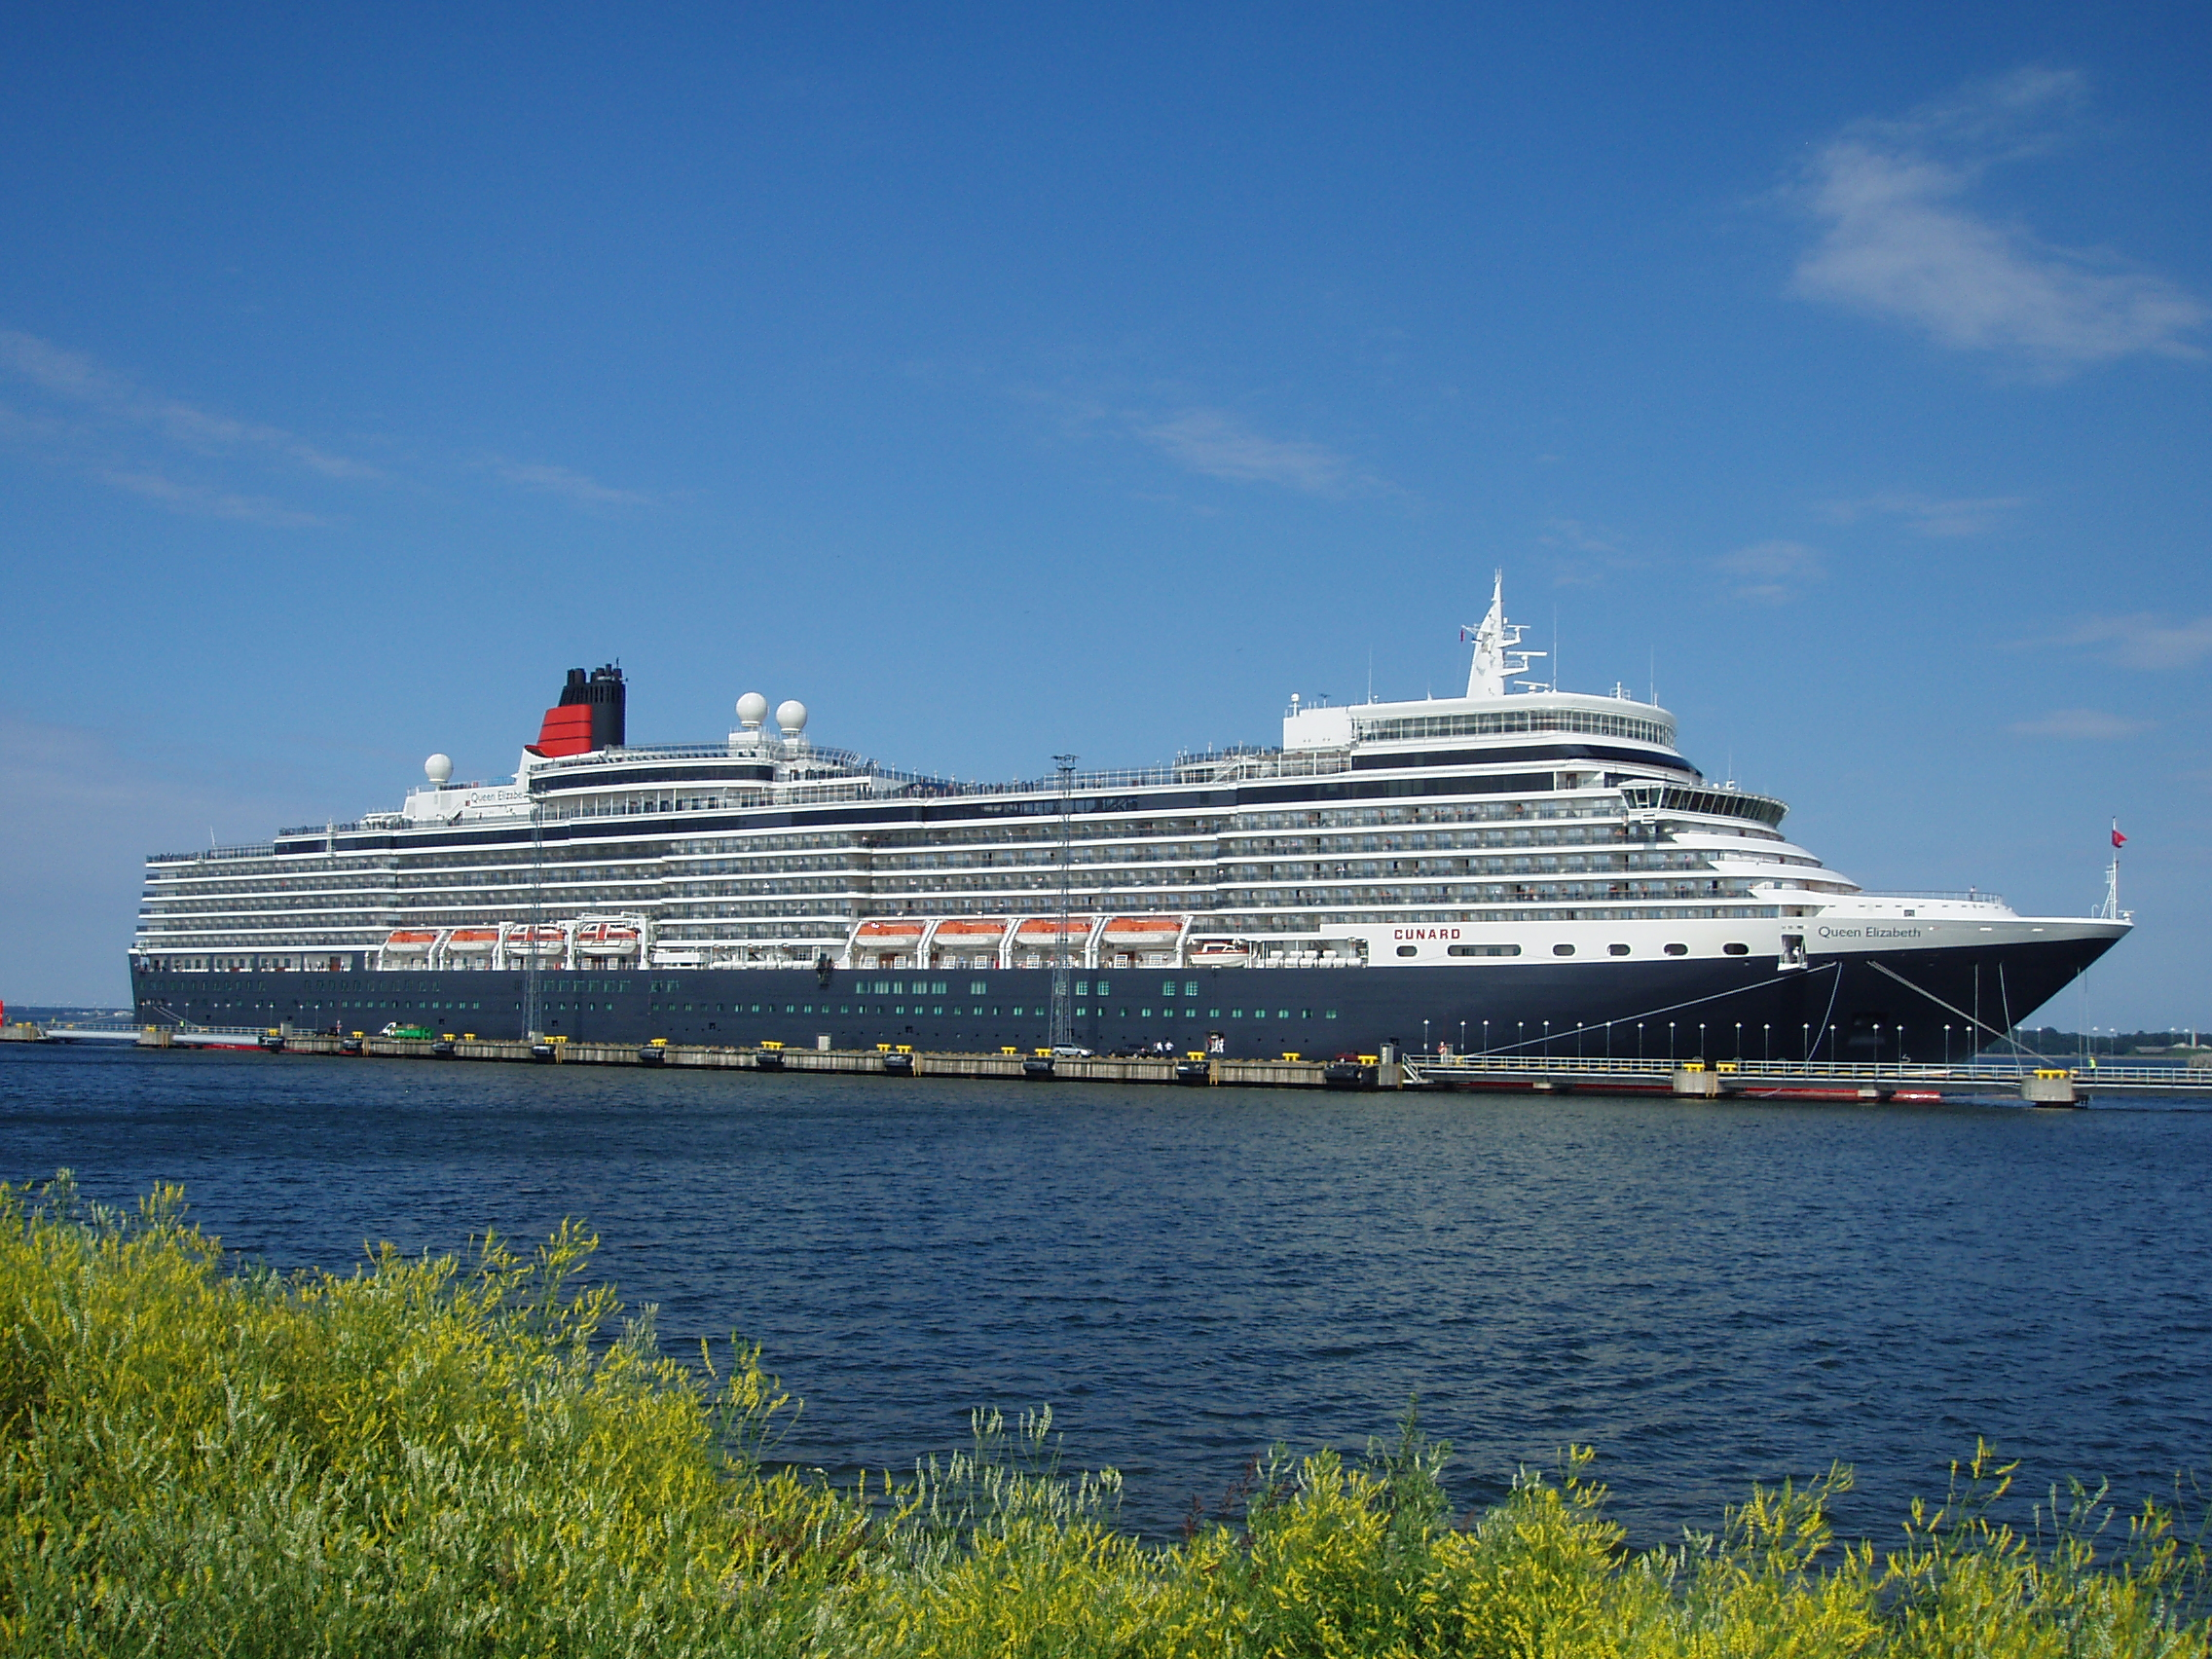 MS Queen Elizabeth - Wikipedia